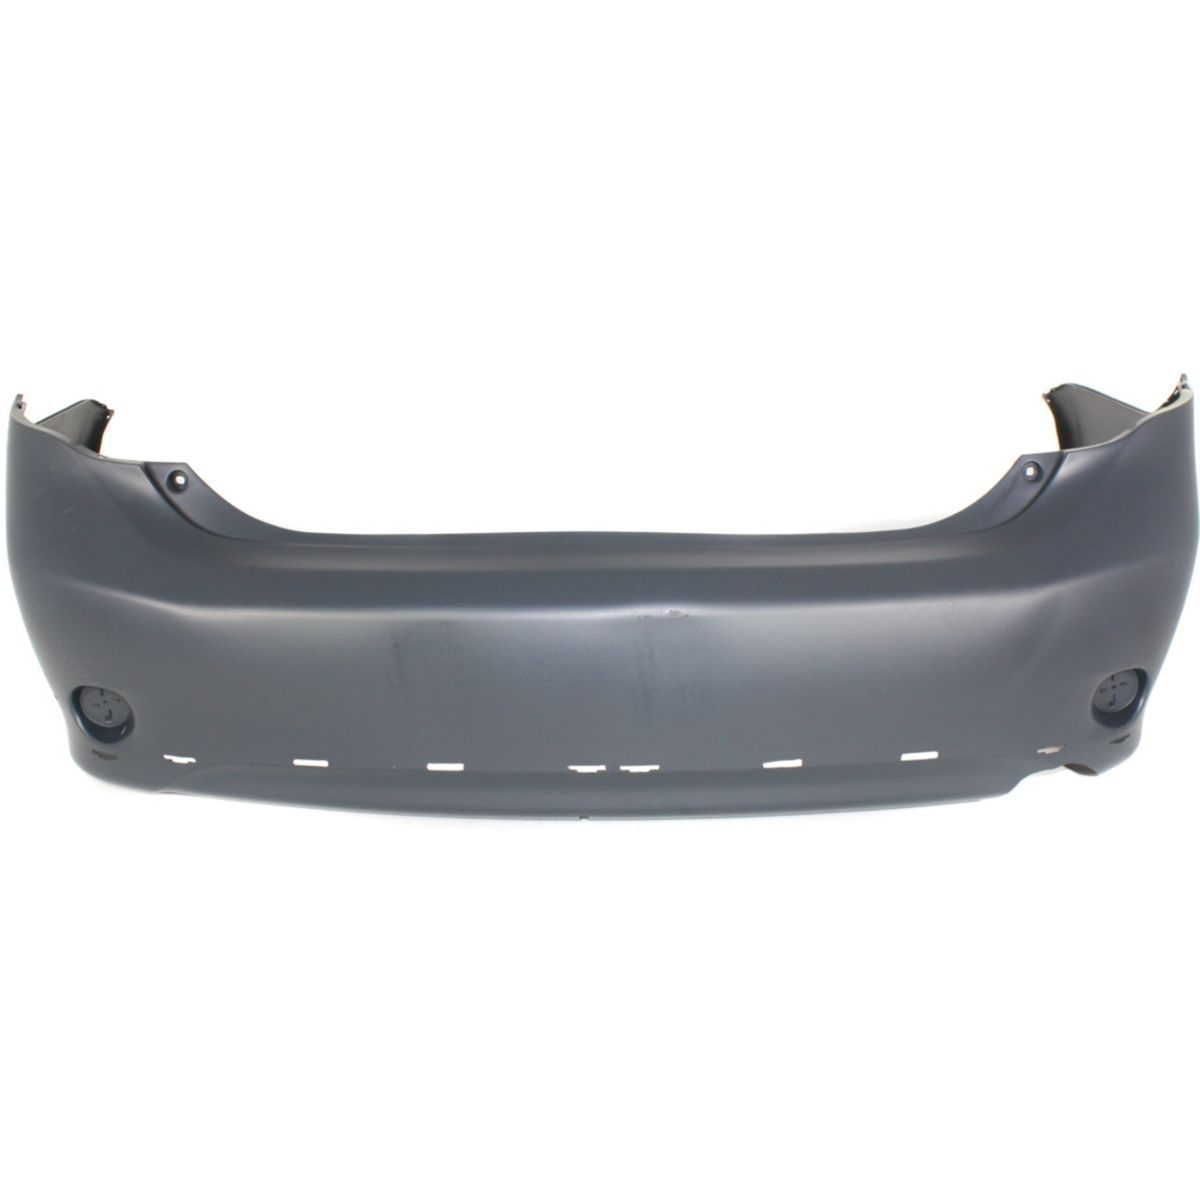 2009-2010 TOYOTA COROLLA Rear Bumper Cover S|XRS Painted to Match